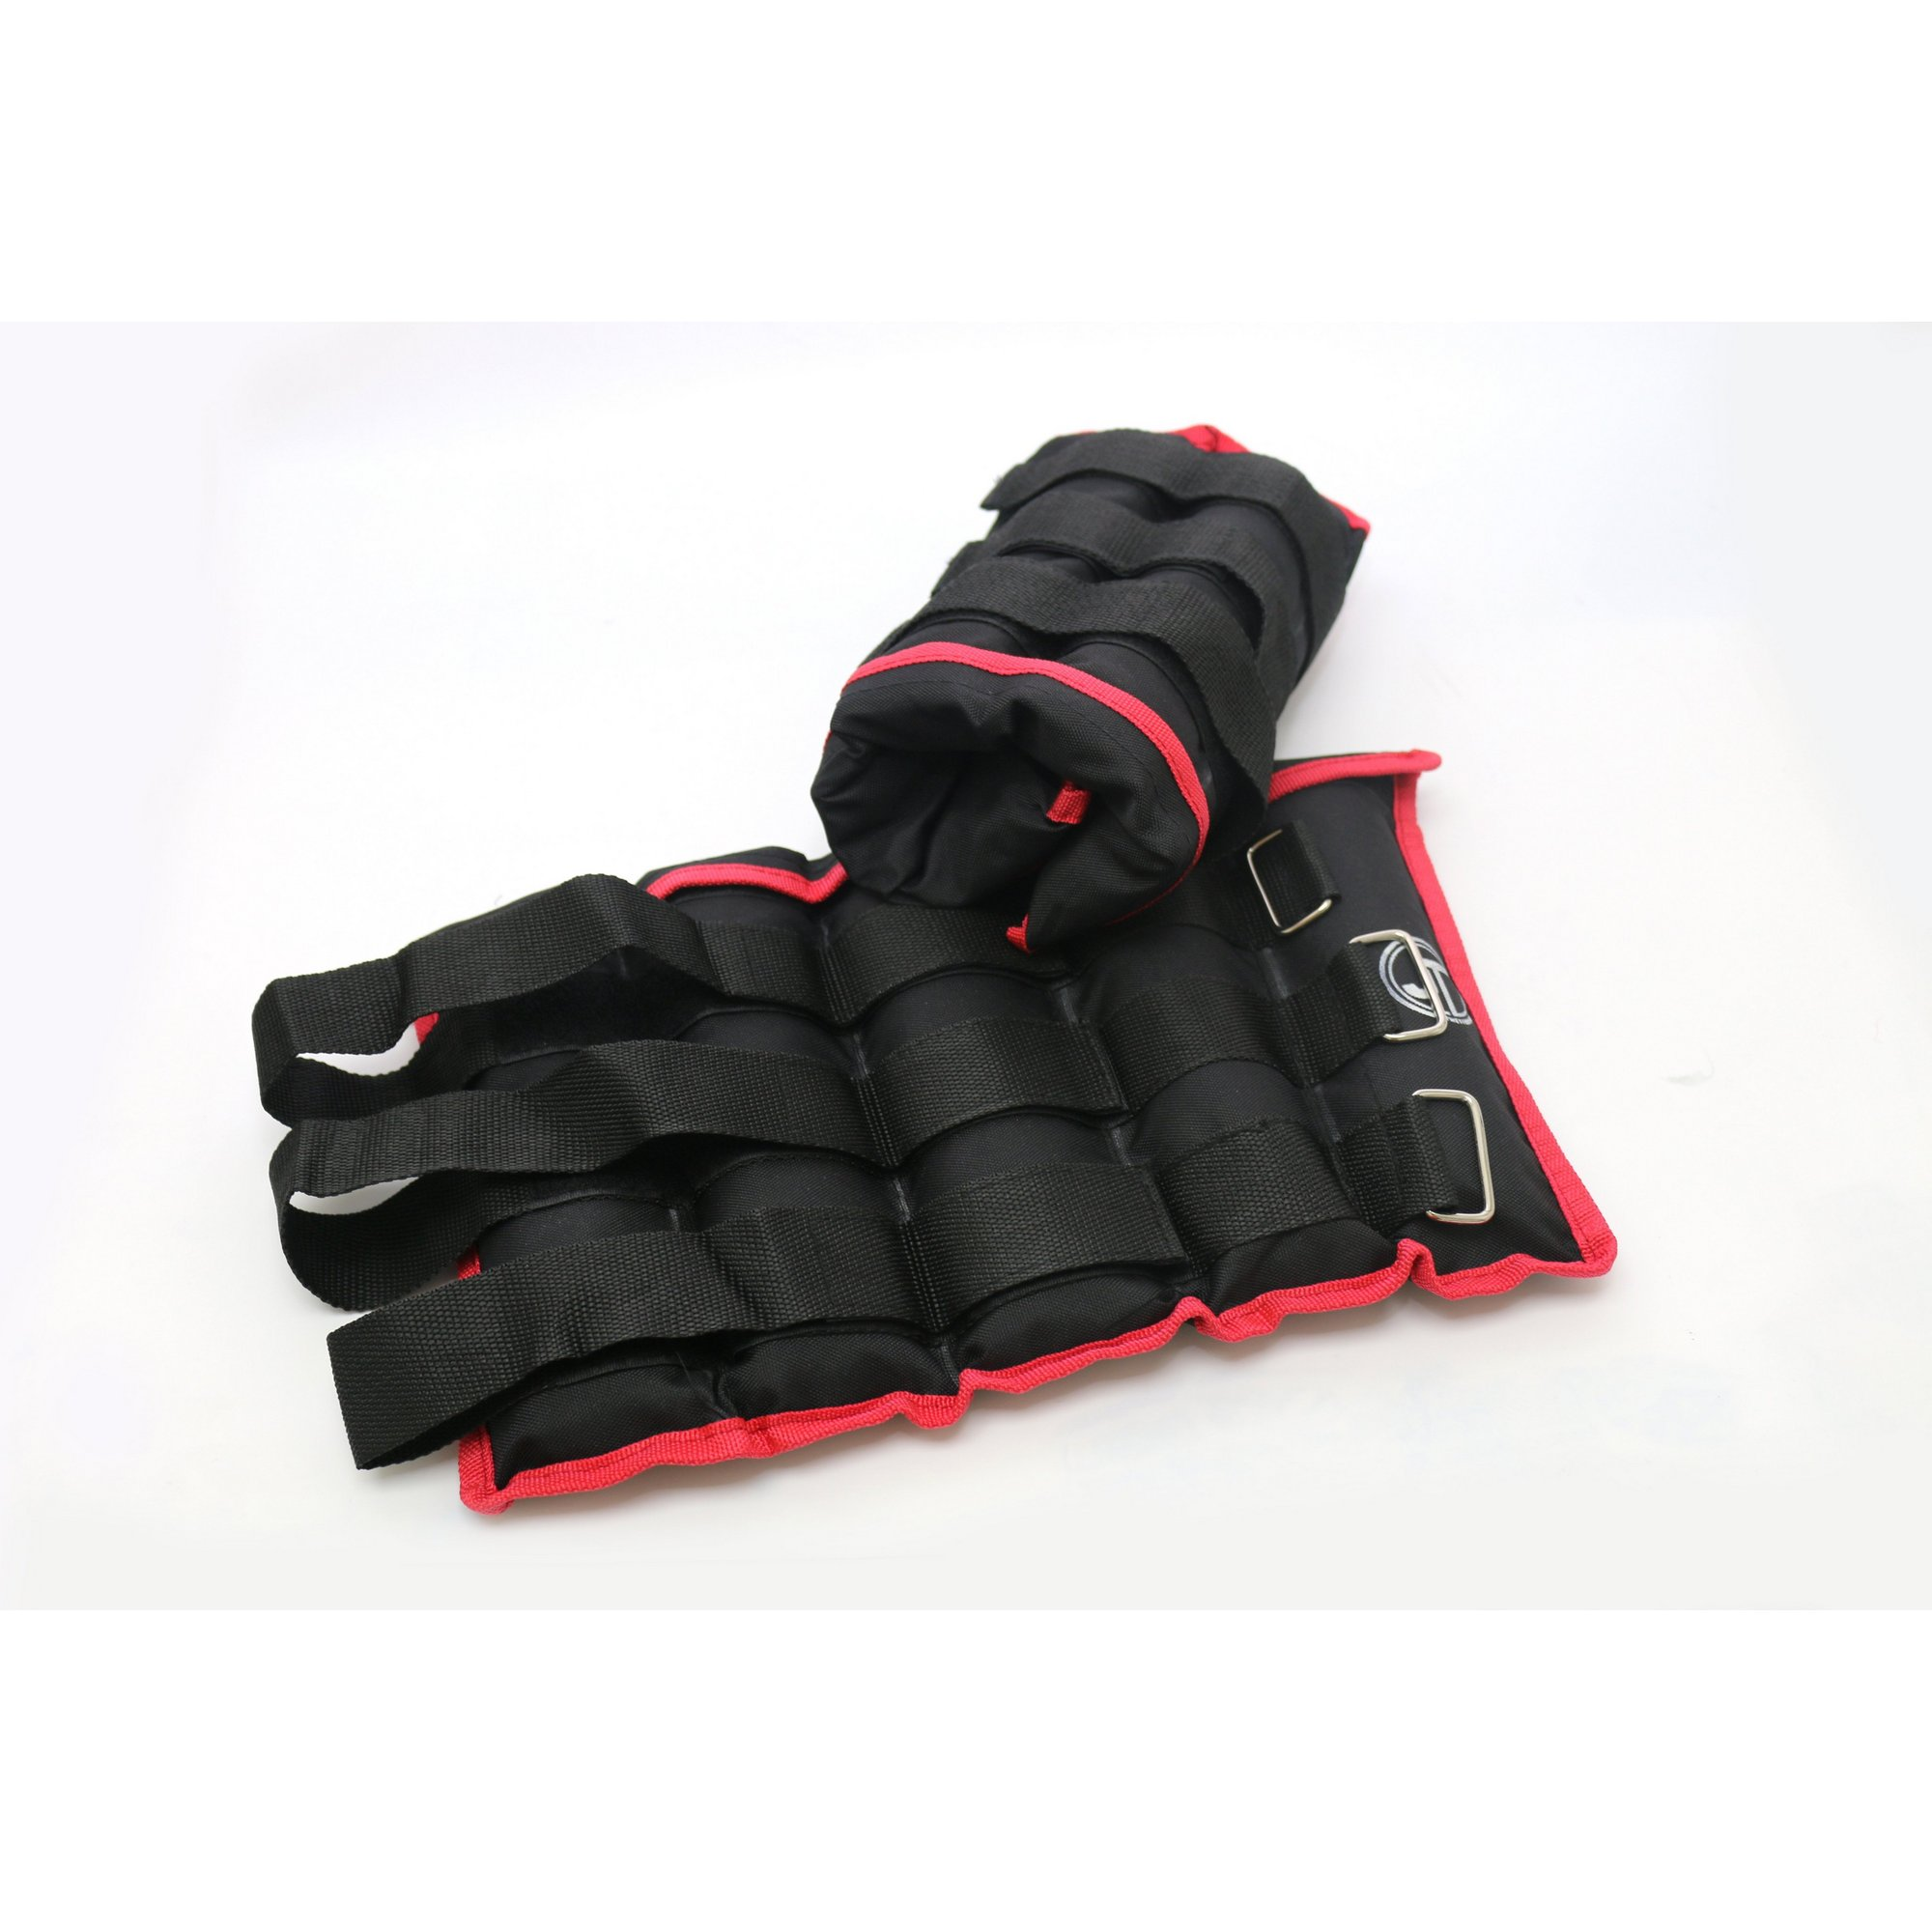 Image of Adjustable Black/Red Ankle Weights